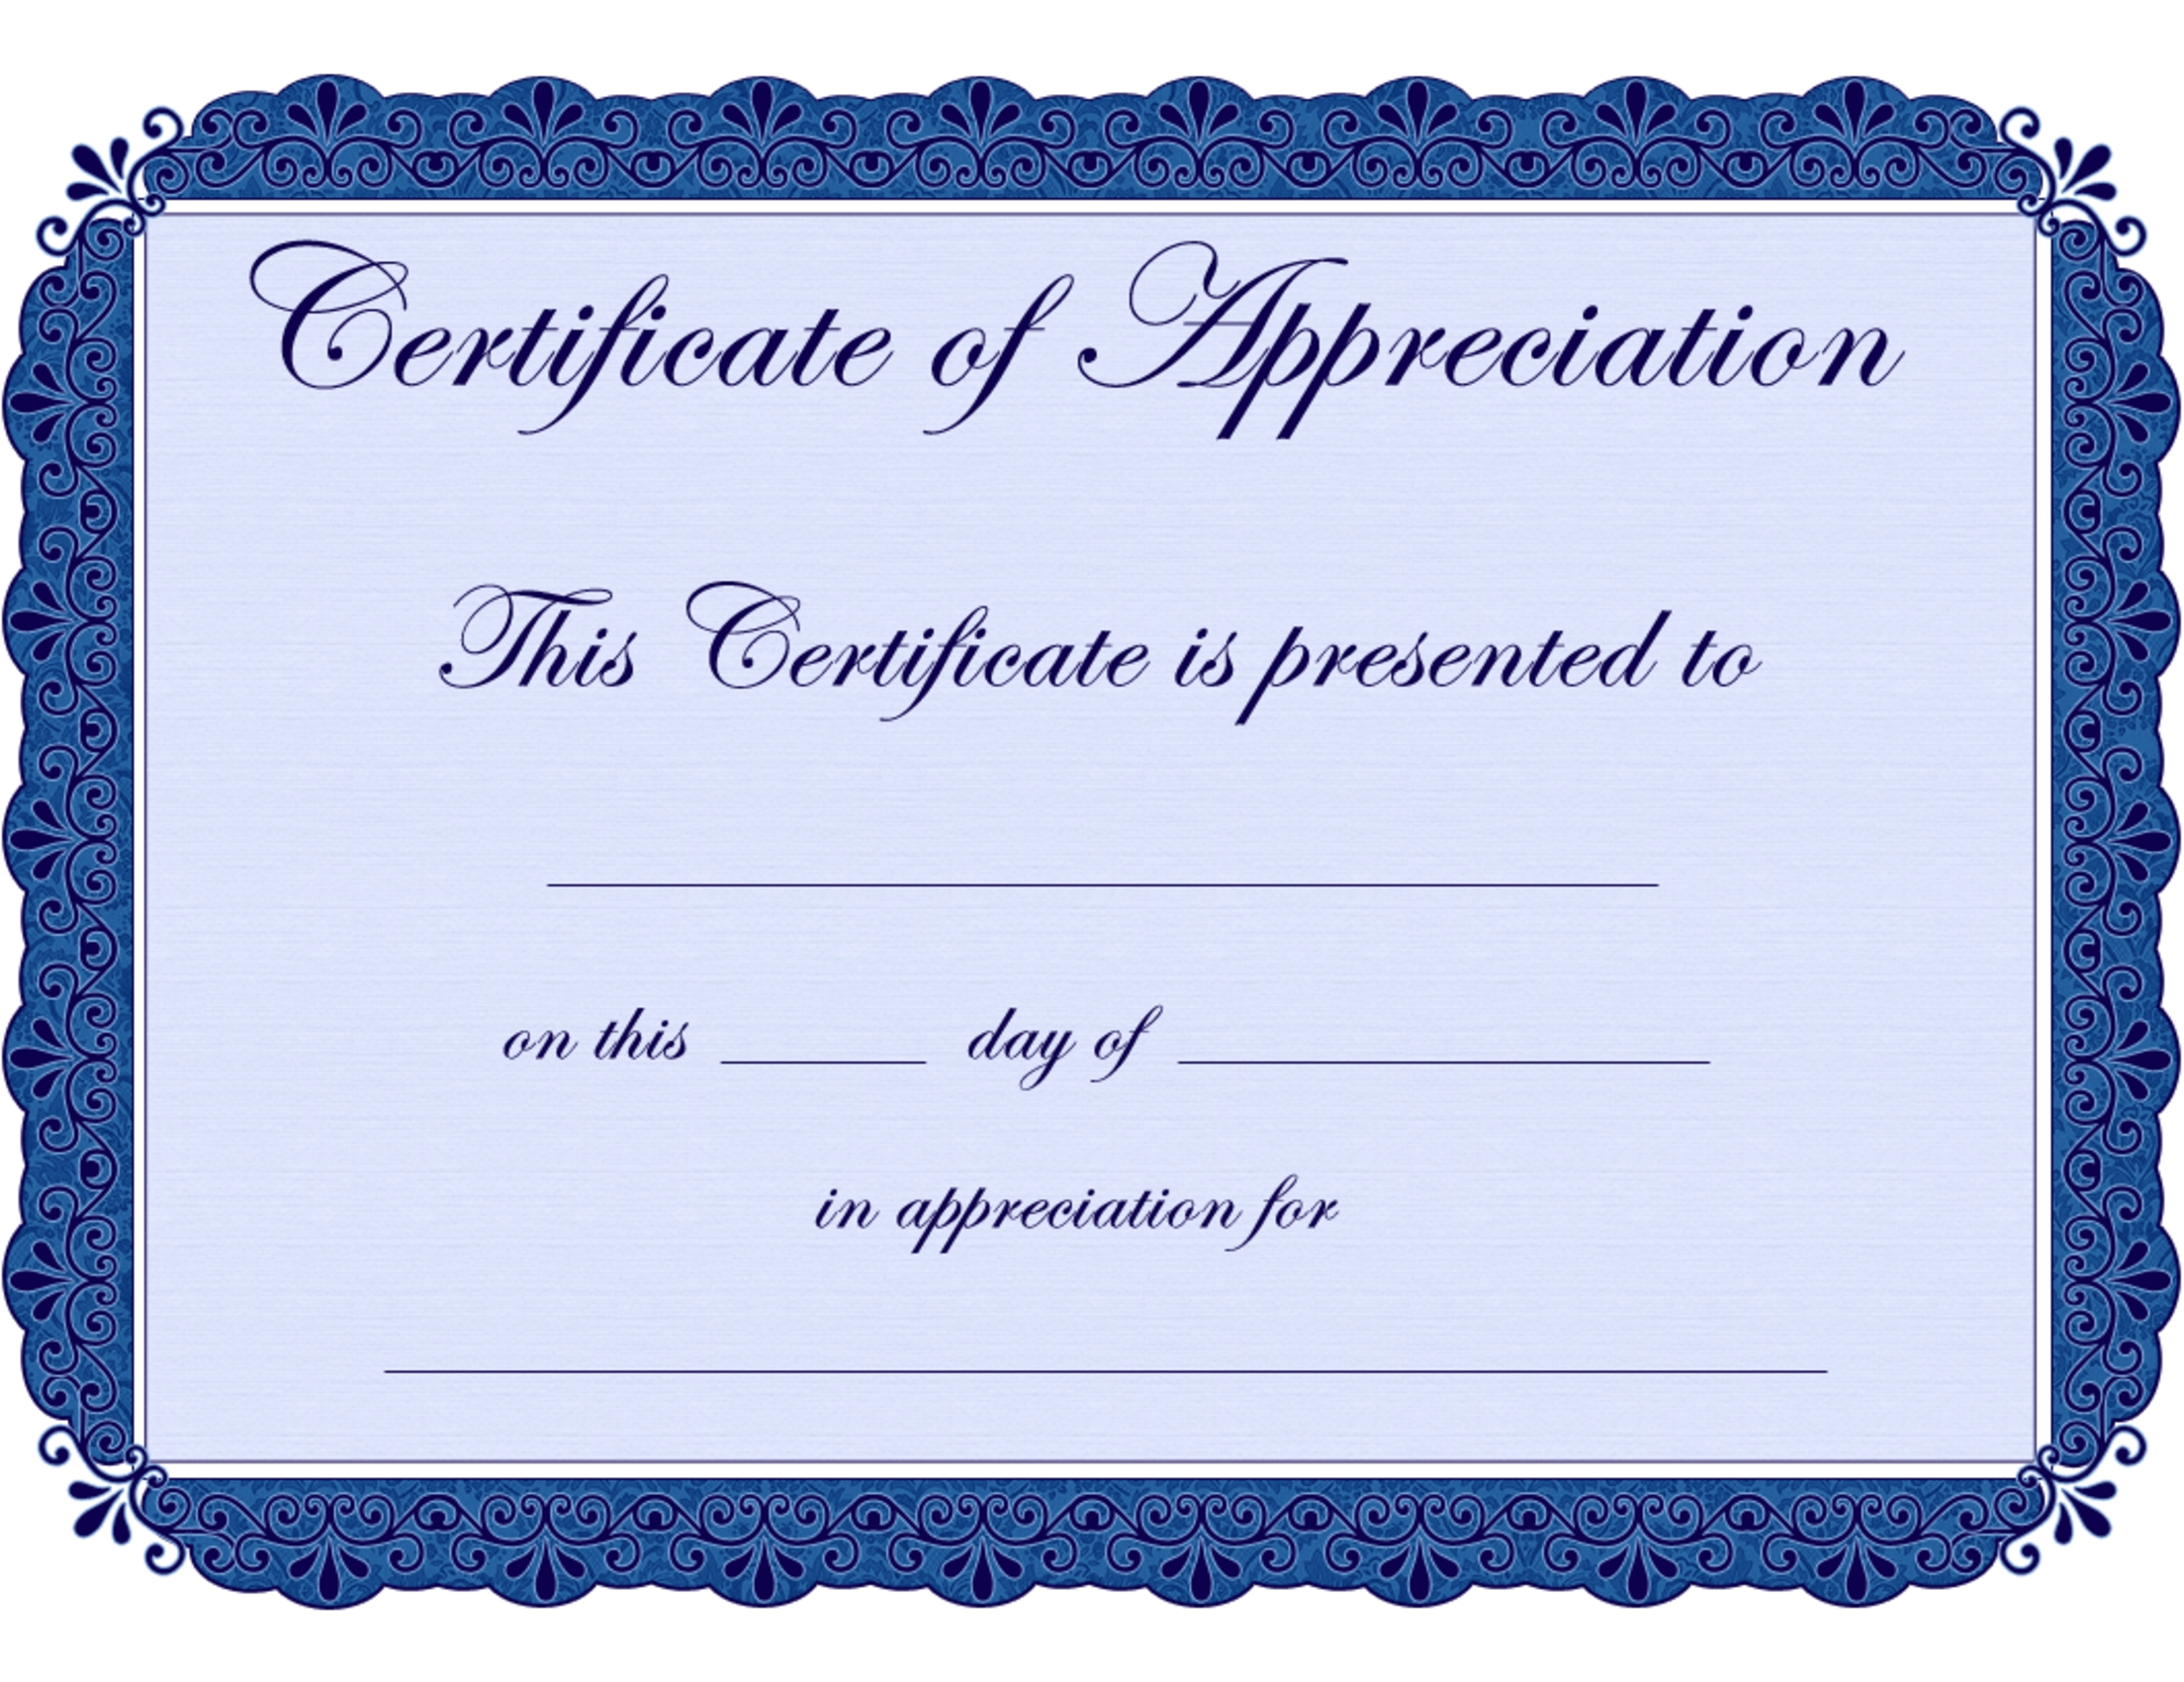 Certificate Template Recognition   Safebest.xyz Within Free Template For Certificate Of Recognition